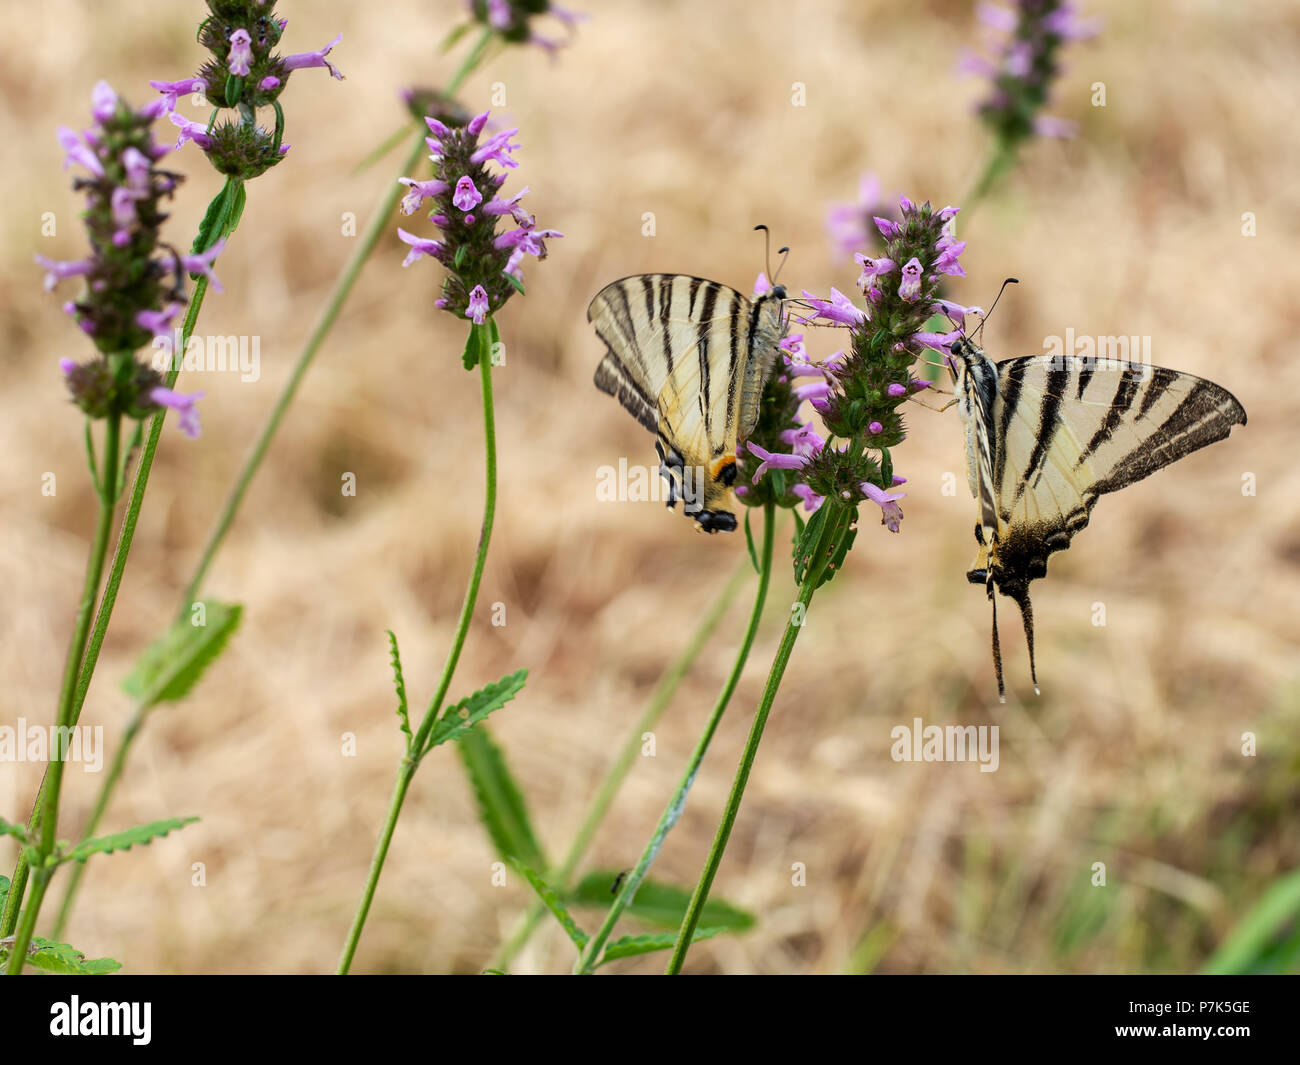 Closeup of yellow and black striped scarce swallowtail butterflies. Iphiclides podalirius. - Stock Image